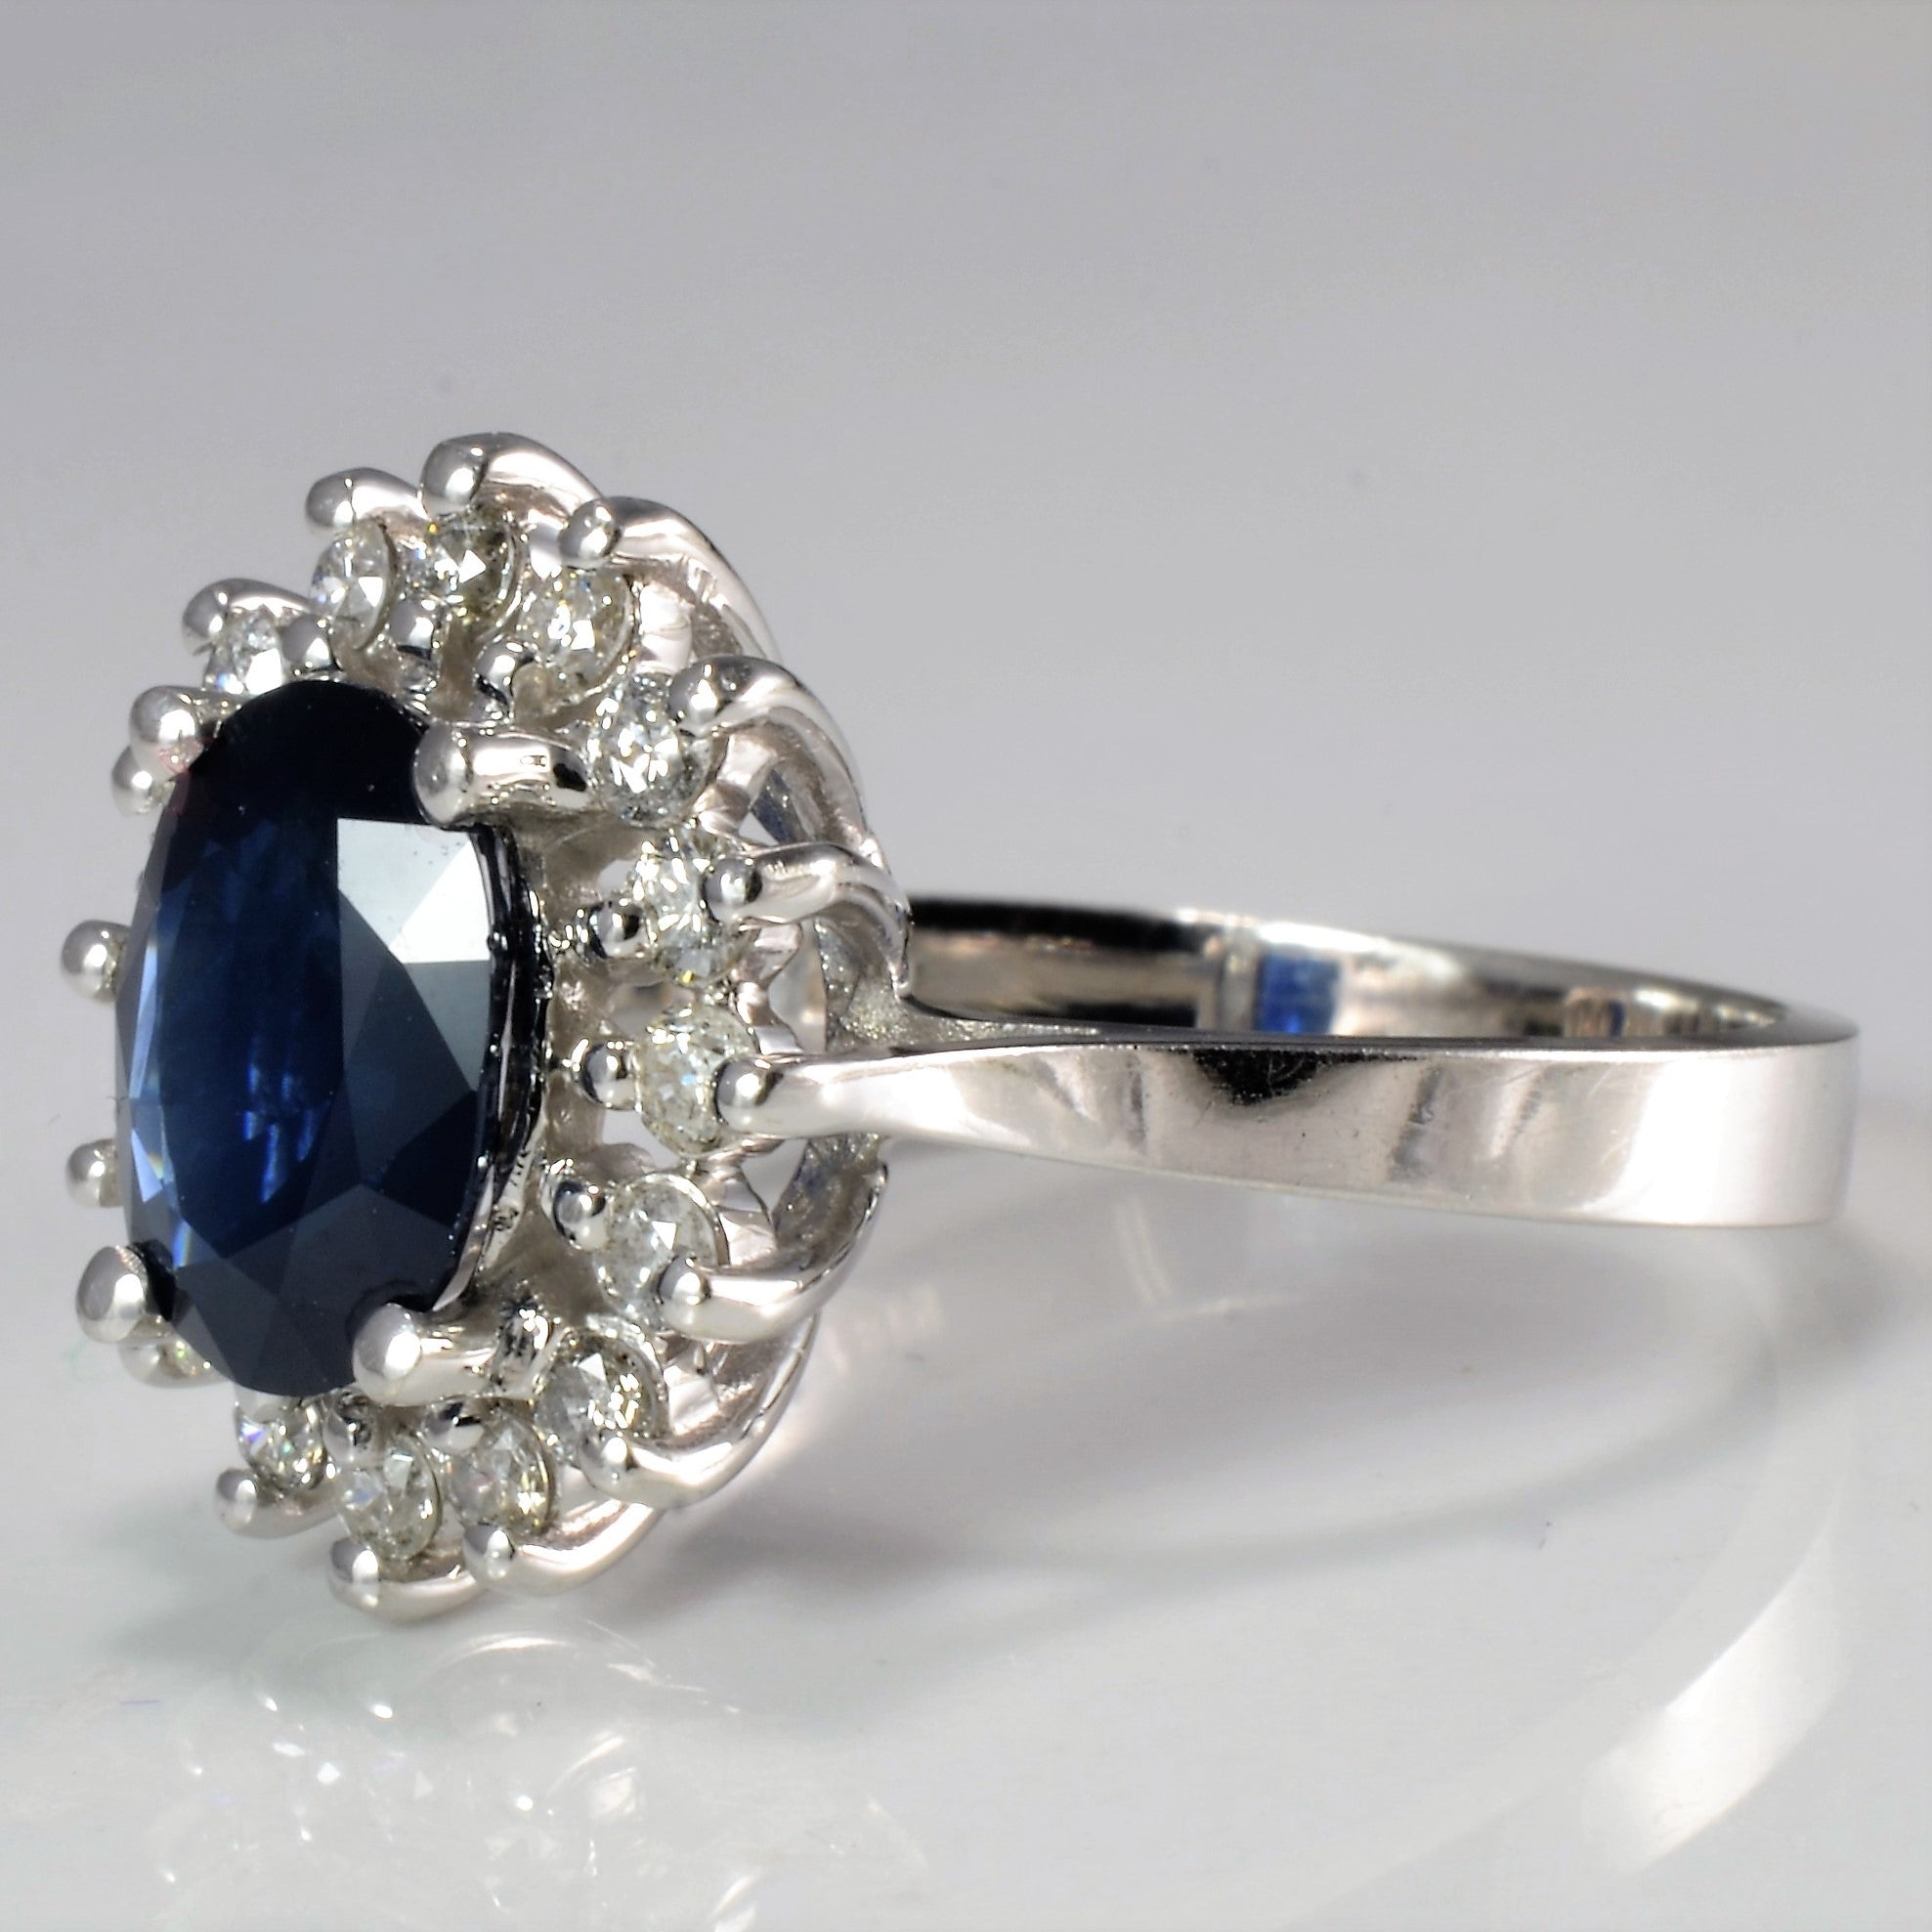 Cocktail Sapphire & Diamond Ladies Ring | 0.32 ctw, SZ 7 |